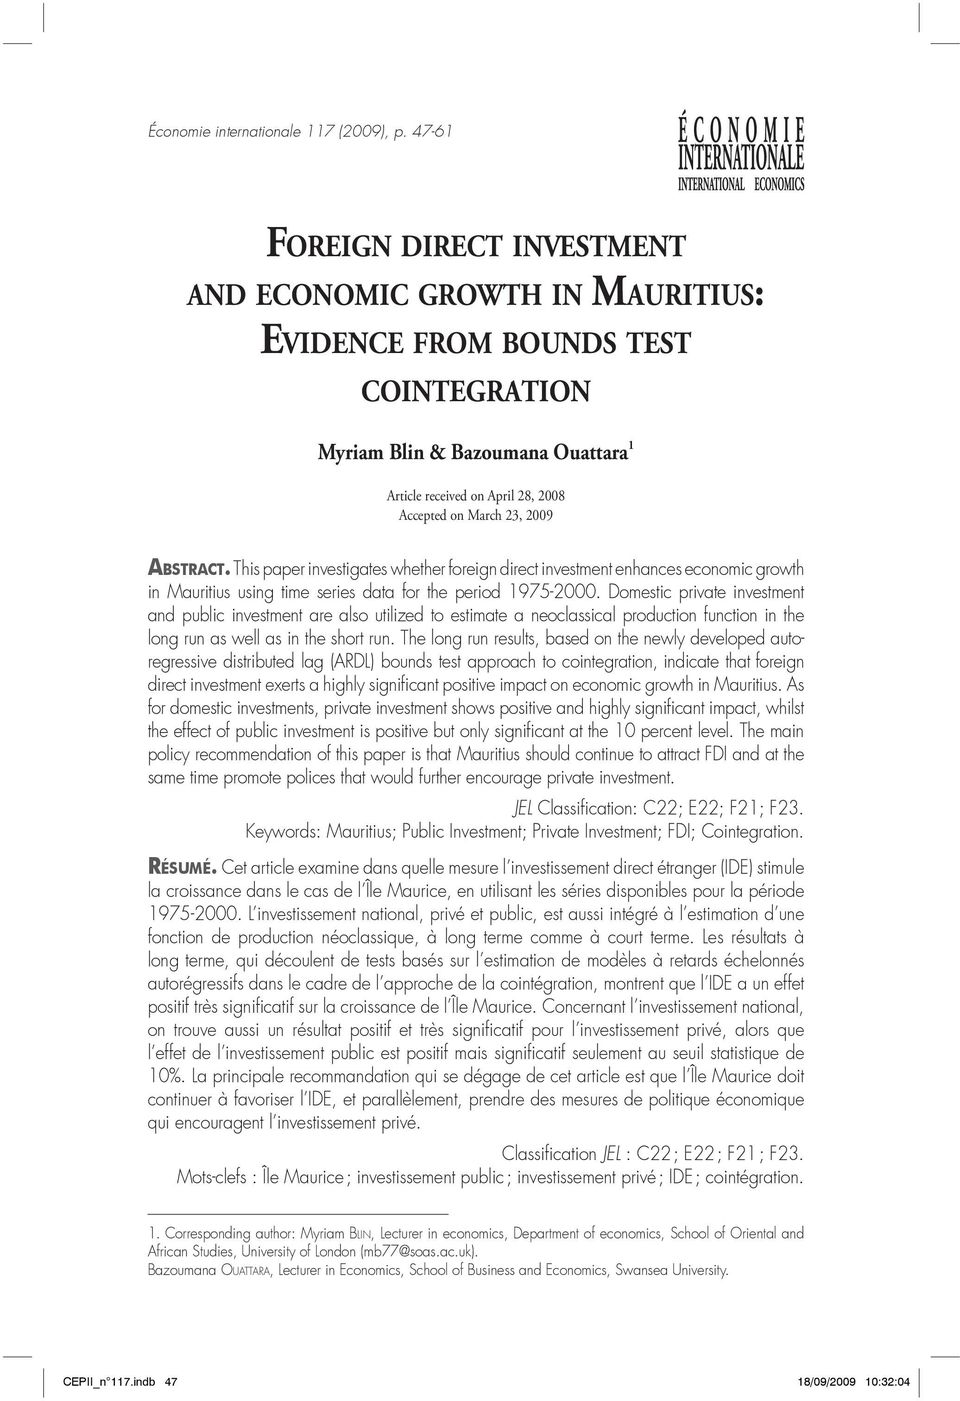 2009 ABSTRACT. This paper investigates whether foreign direct investment enhances economic growth in Mauritius using time series data for the period 1975-2000.